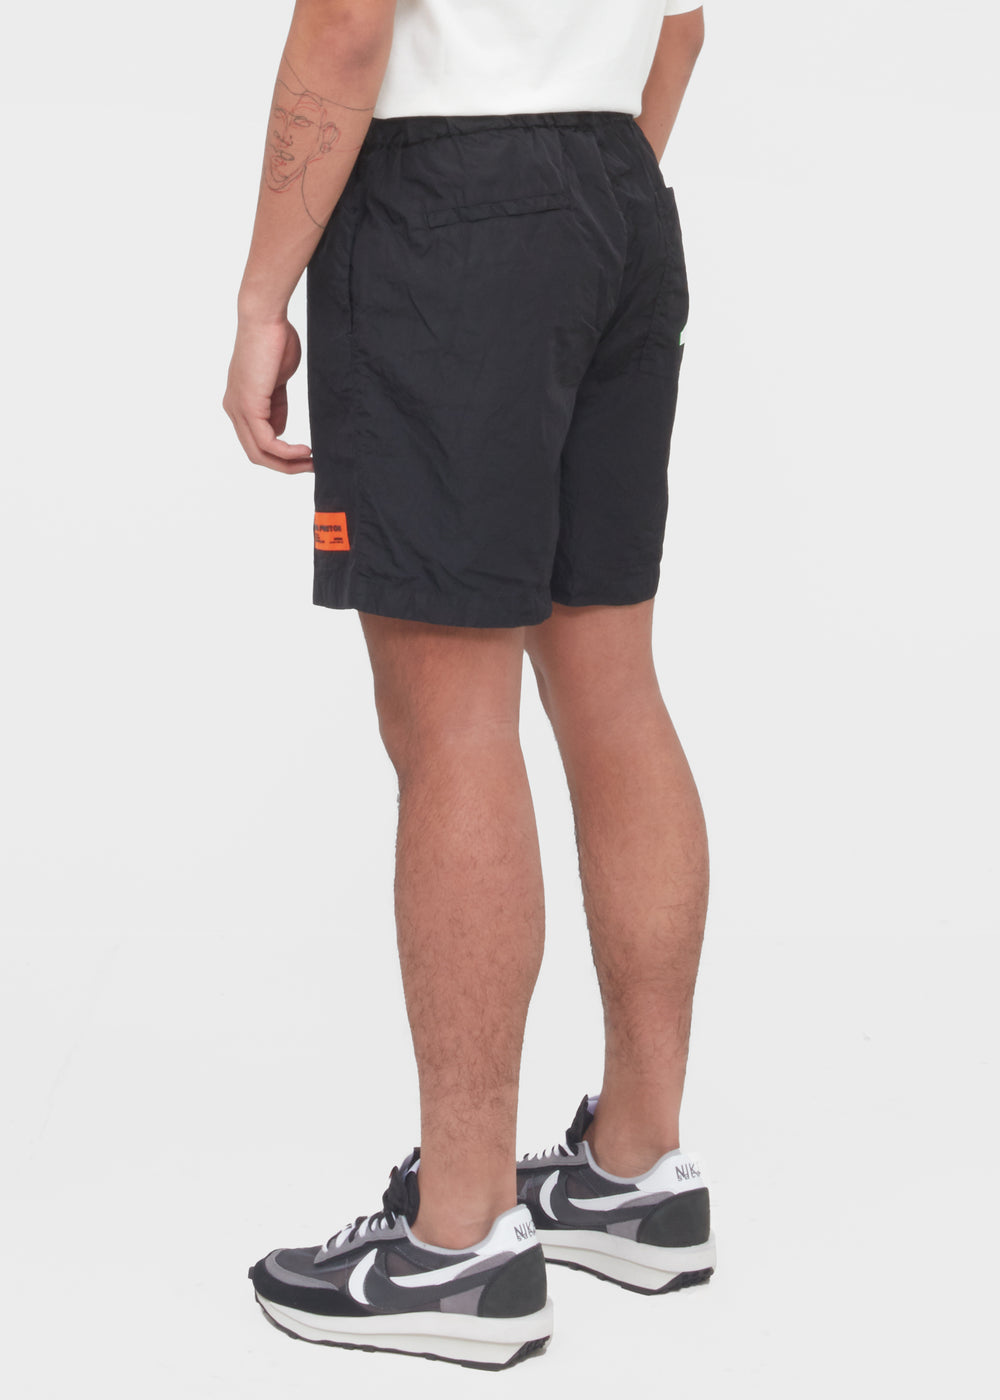 heron-preston-heron-buckle-shorts-hmcb007s208760061040-black-3